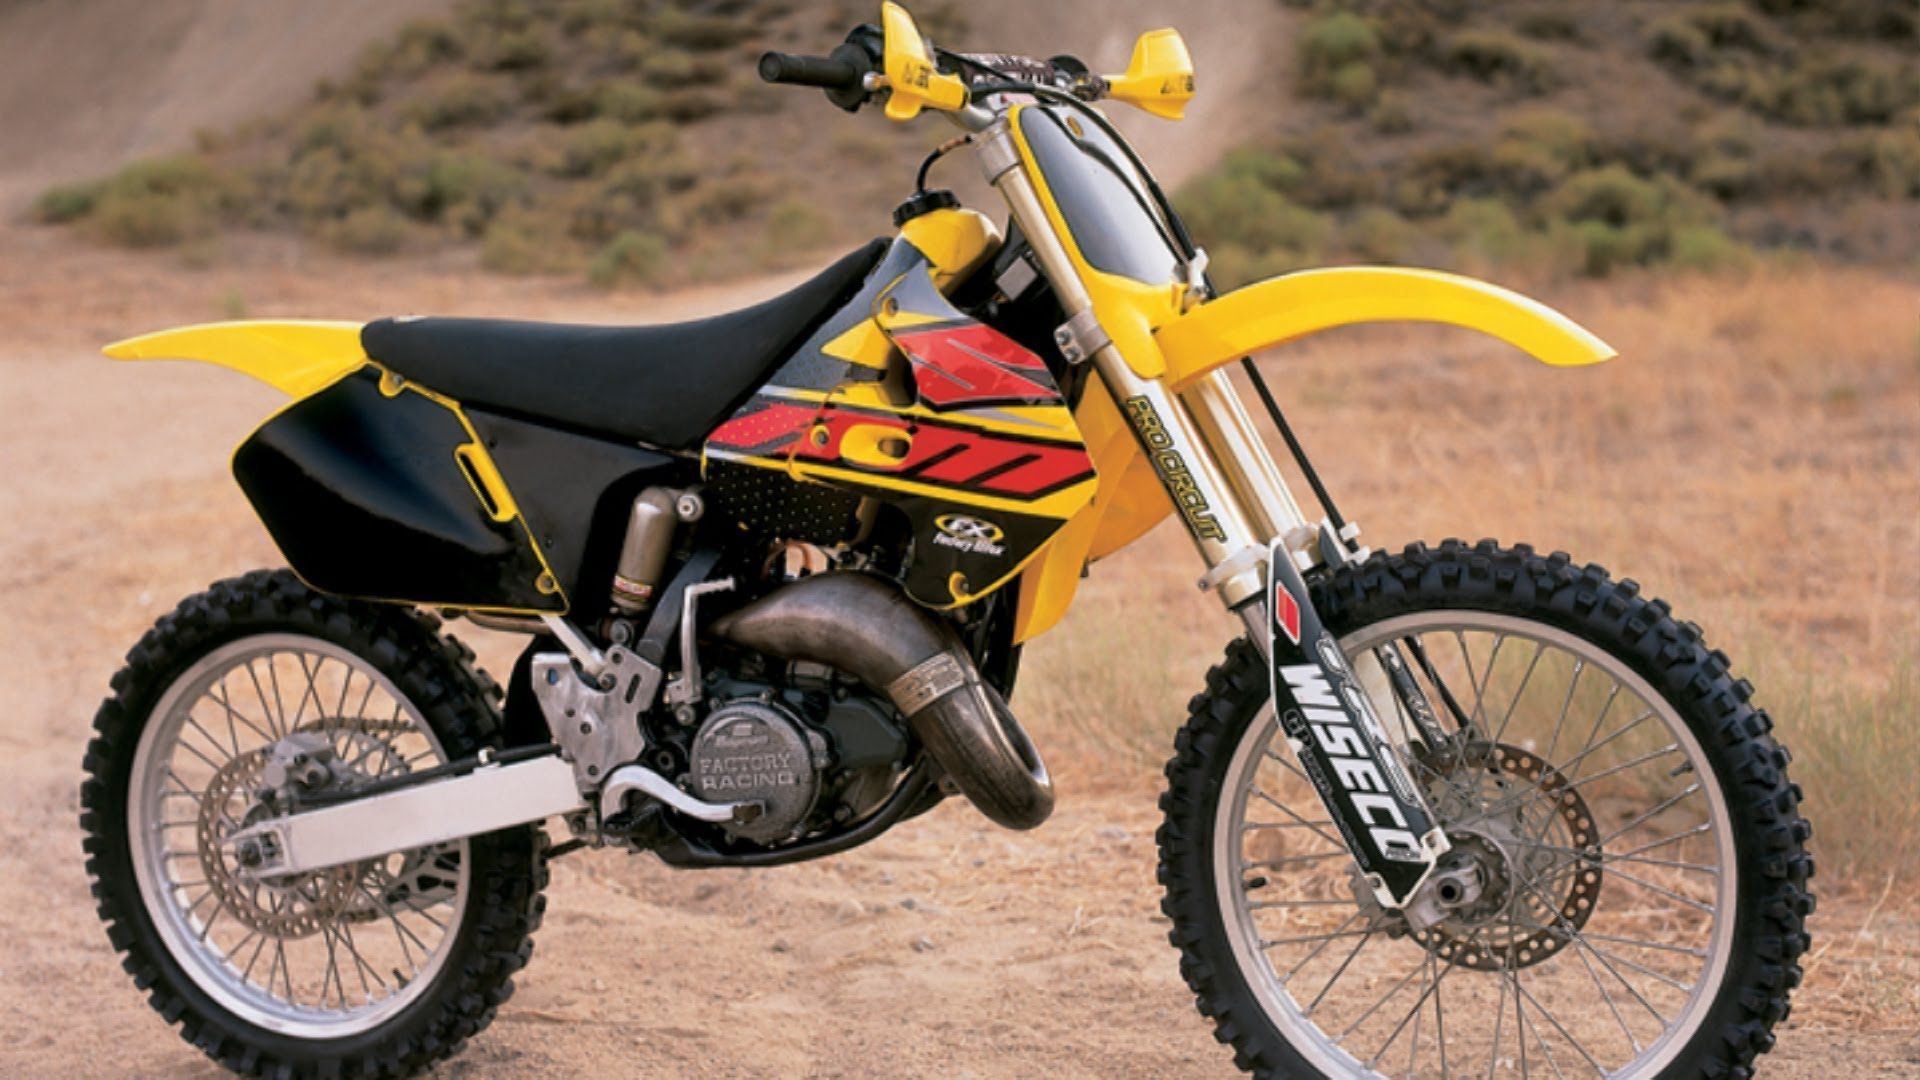 99 suzuki rm 125 service manual various owner manual guide u2022 rh justk co 2003 RM250 2004 RM125 Graphics